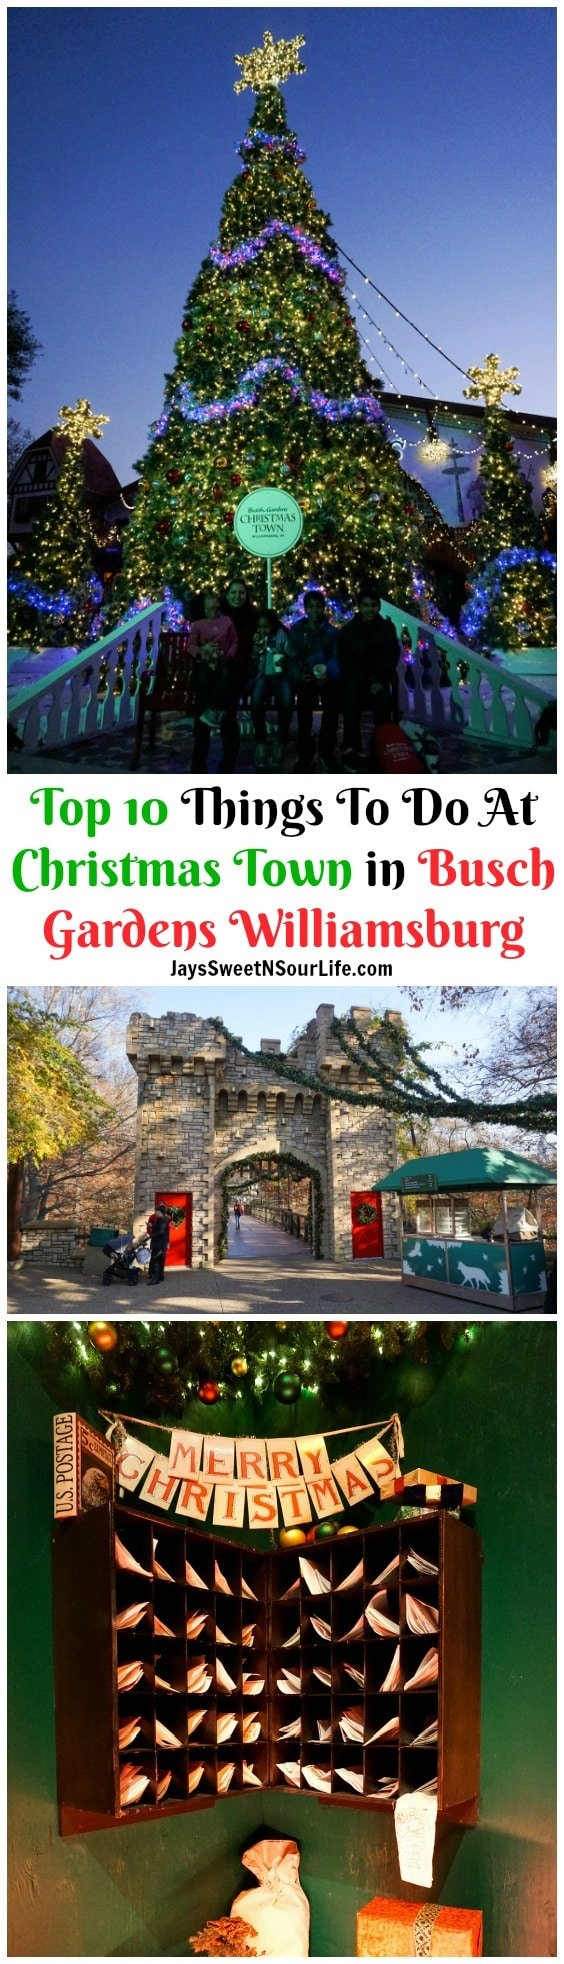 Top 10 Things To Do At Christmas Town in Busch Gardens Williamsburg